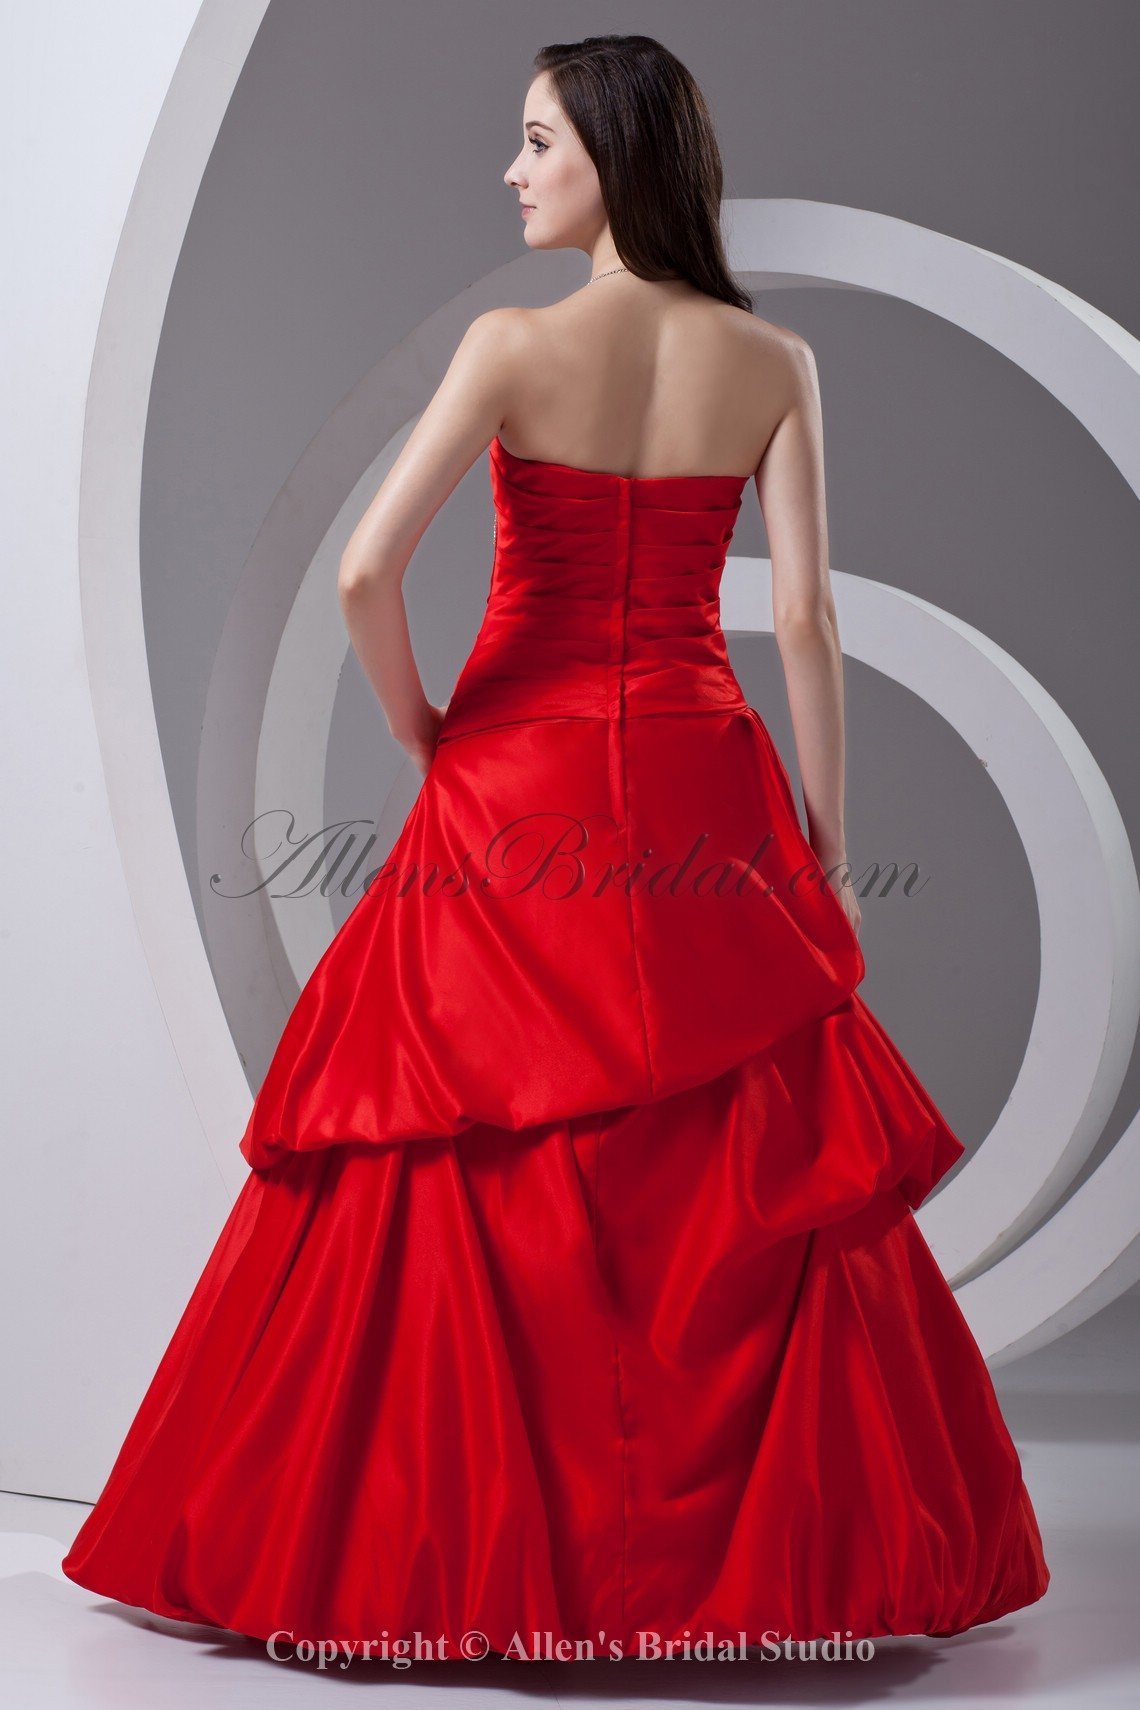 /361-2889/satin-sweetheart-neckline-ball-gown-floor-length-crystals-prom-dress.jpg